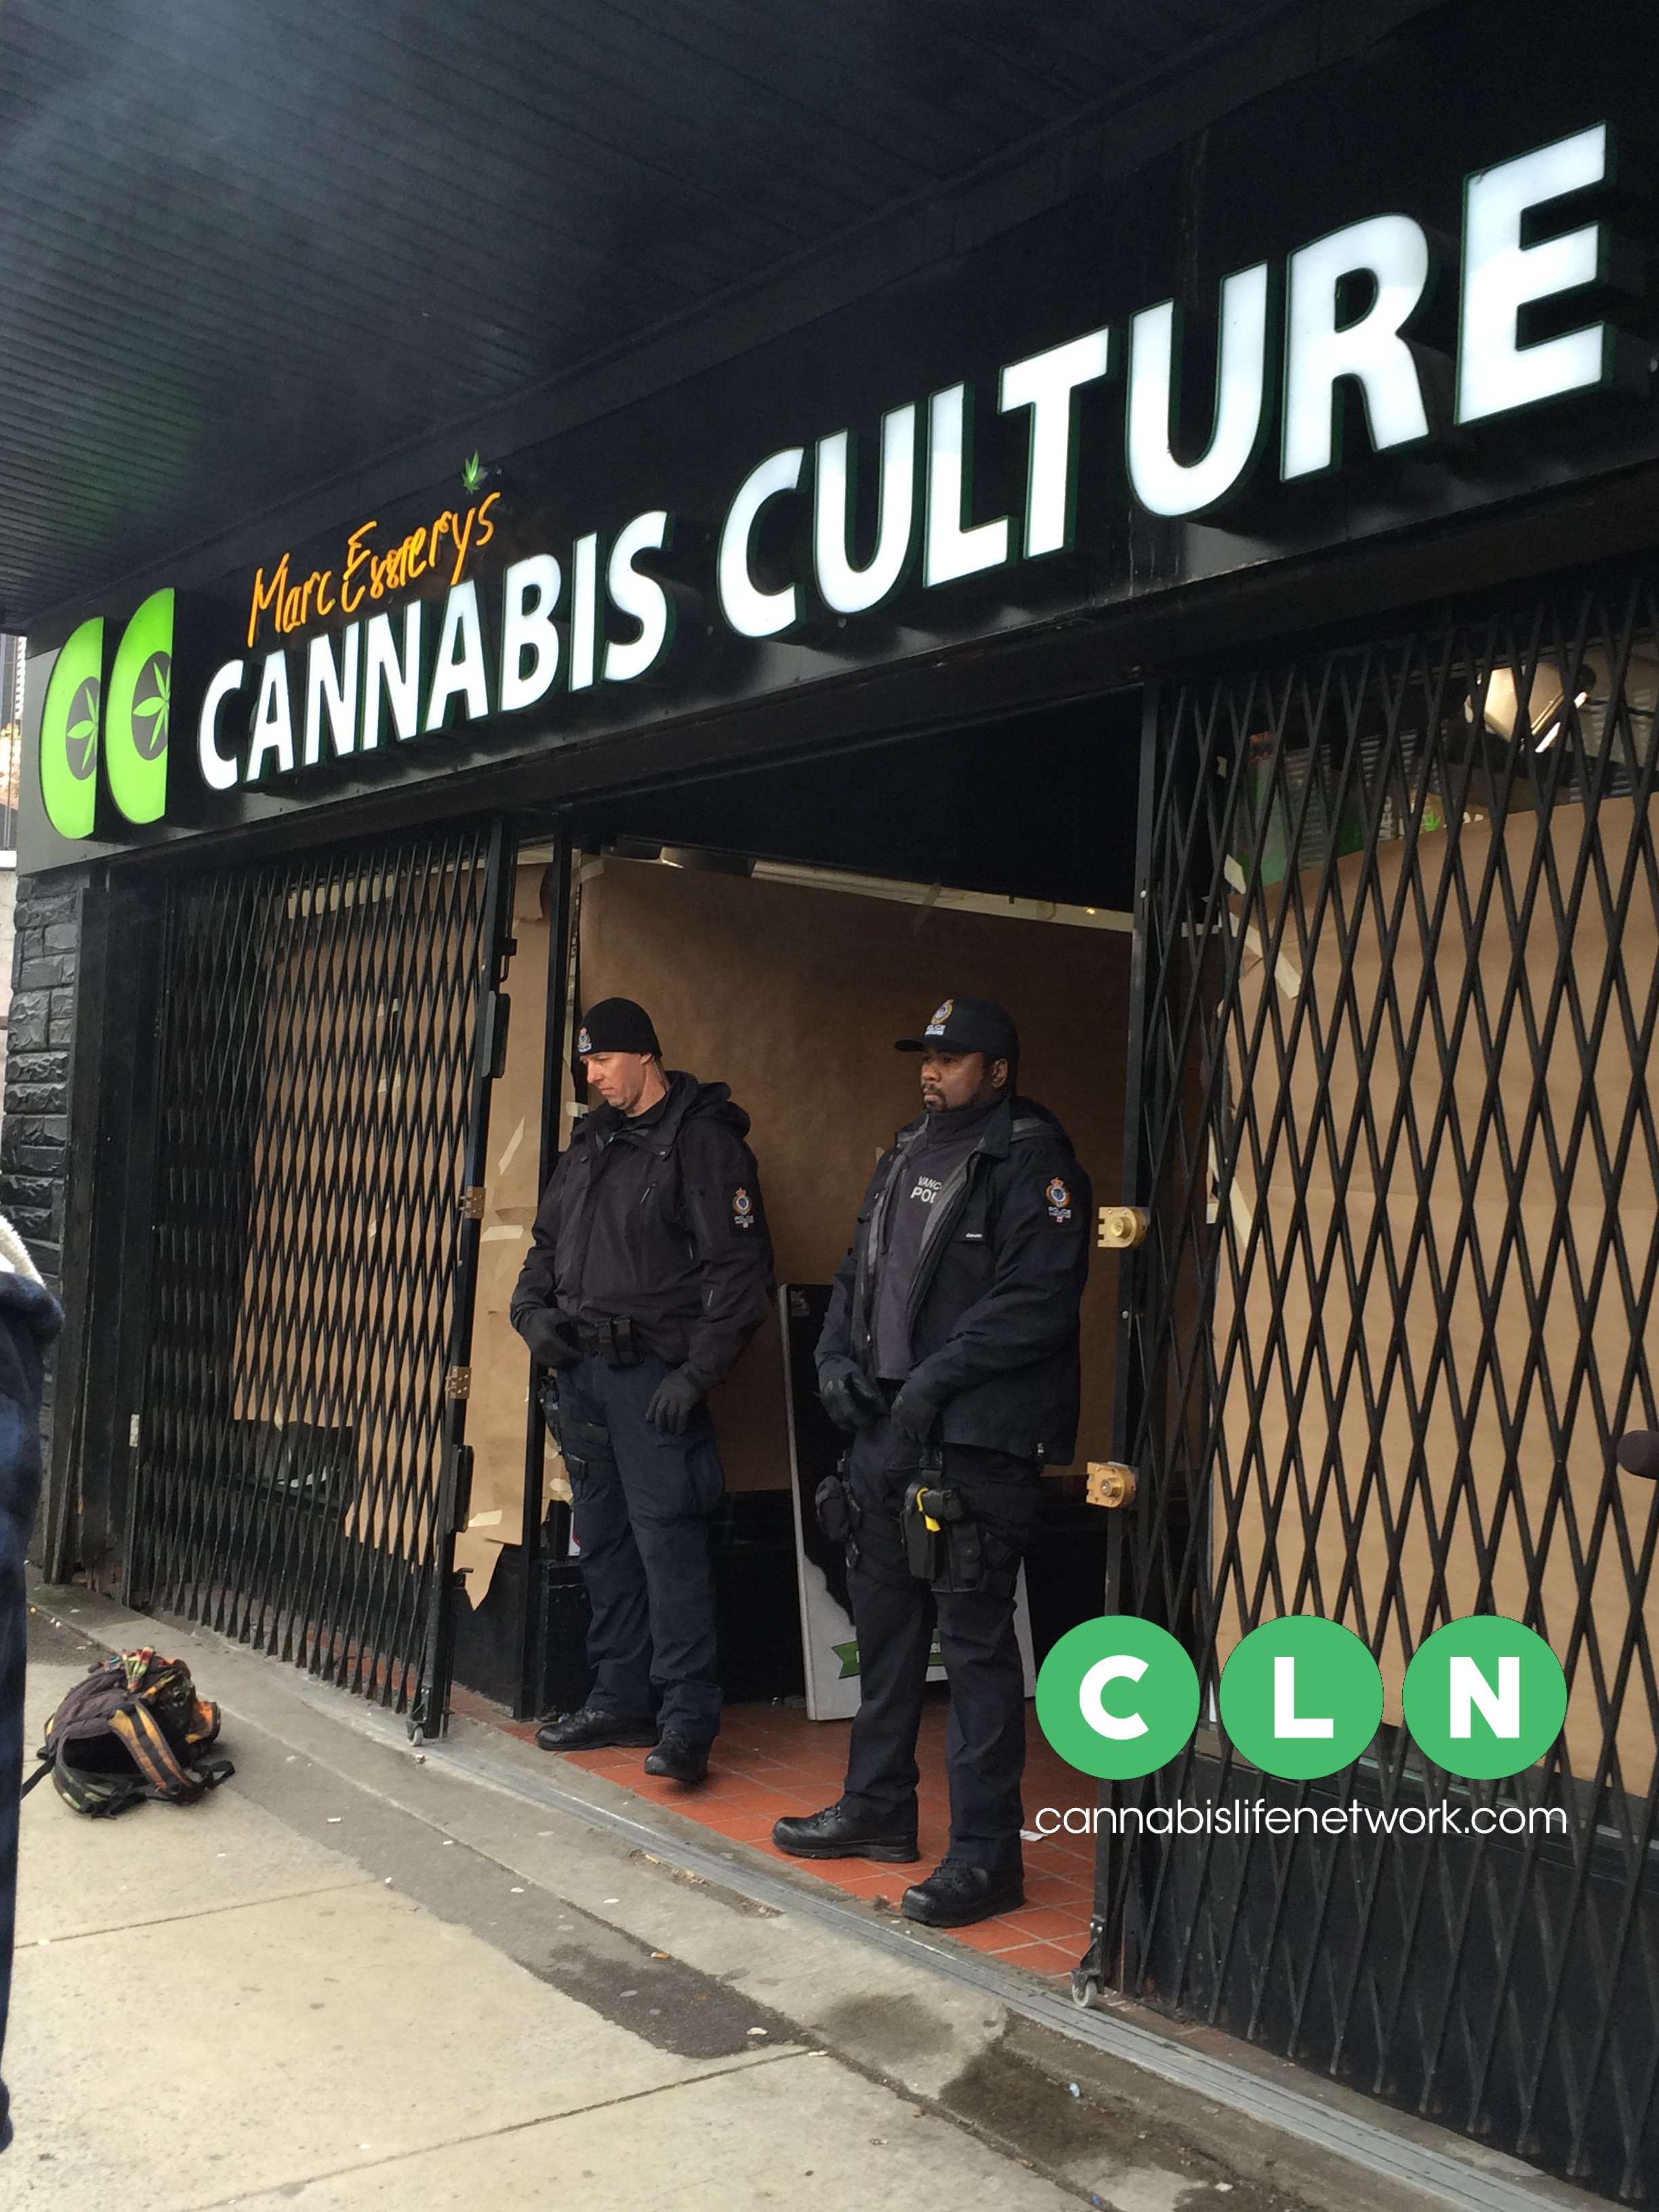 Dankr list all the dispensaries raided since Trudeau took power - Cannabis Life Network